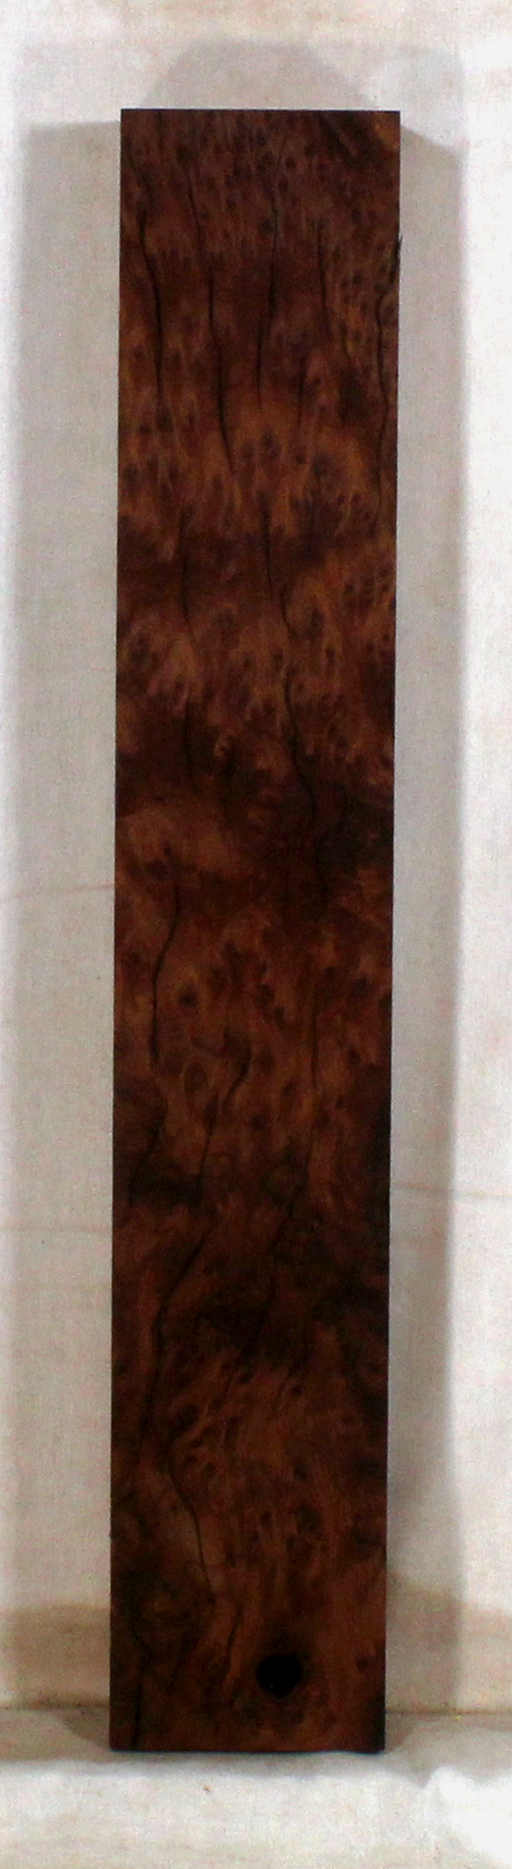 Redwood accent piece for bow riser